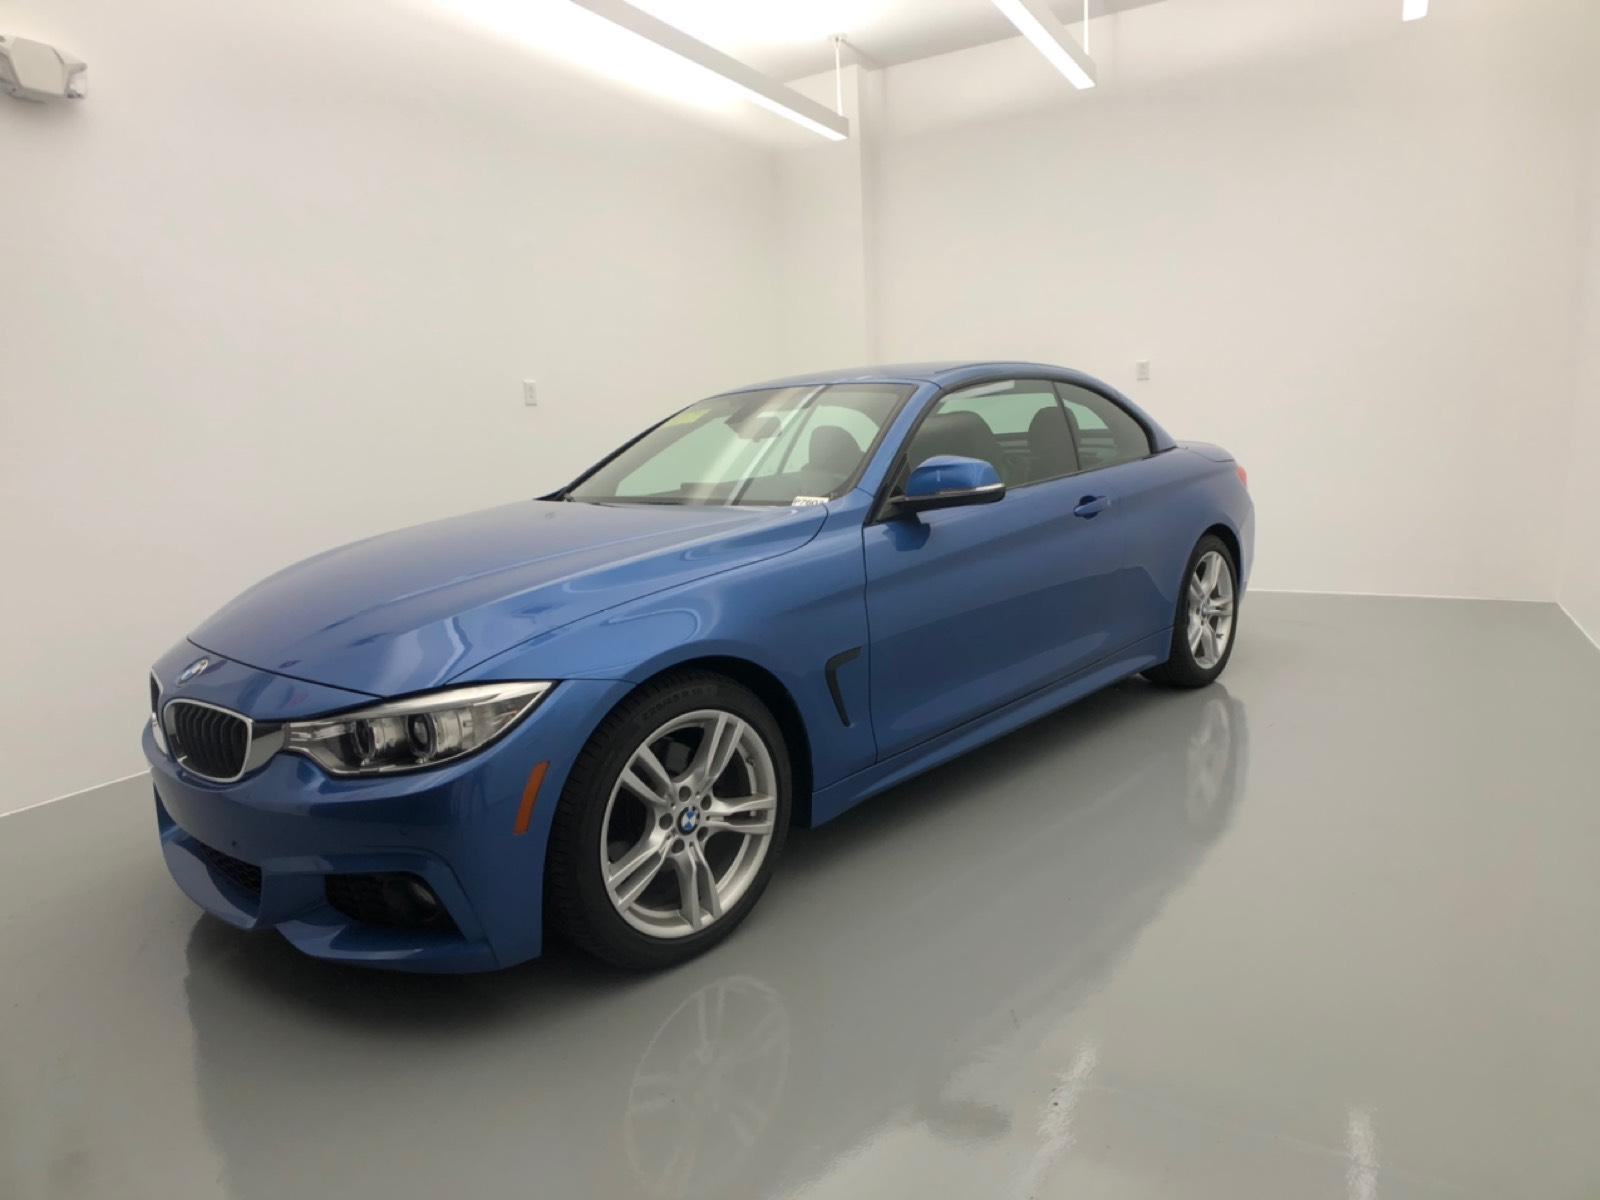 Certified Pre-Owned 2016 428i